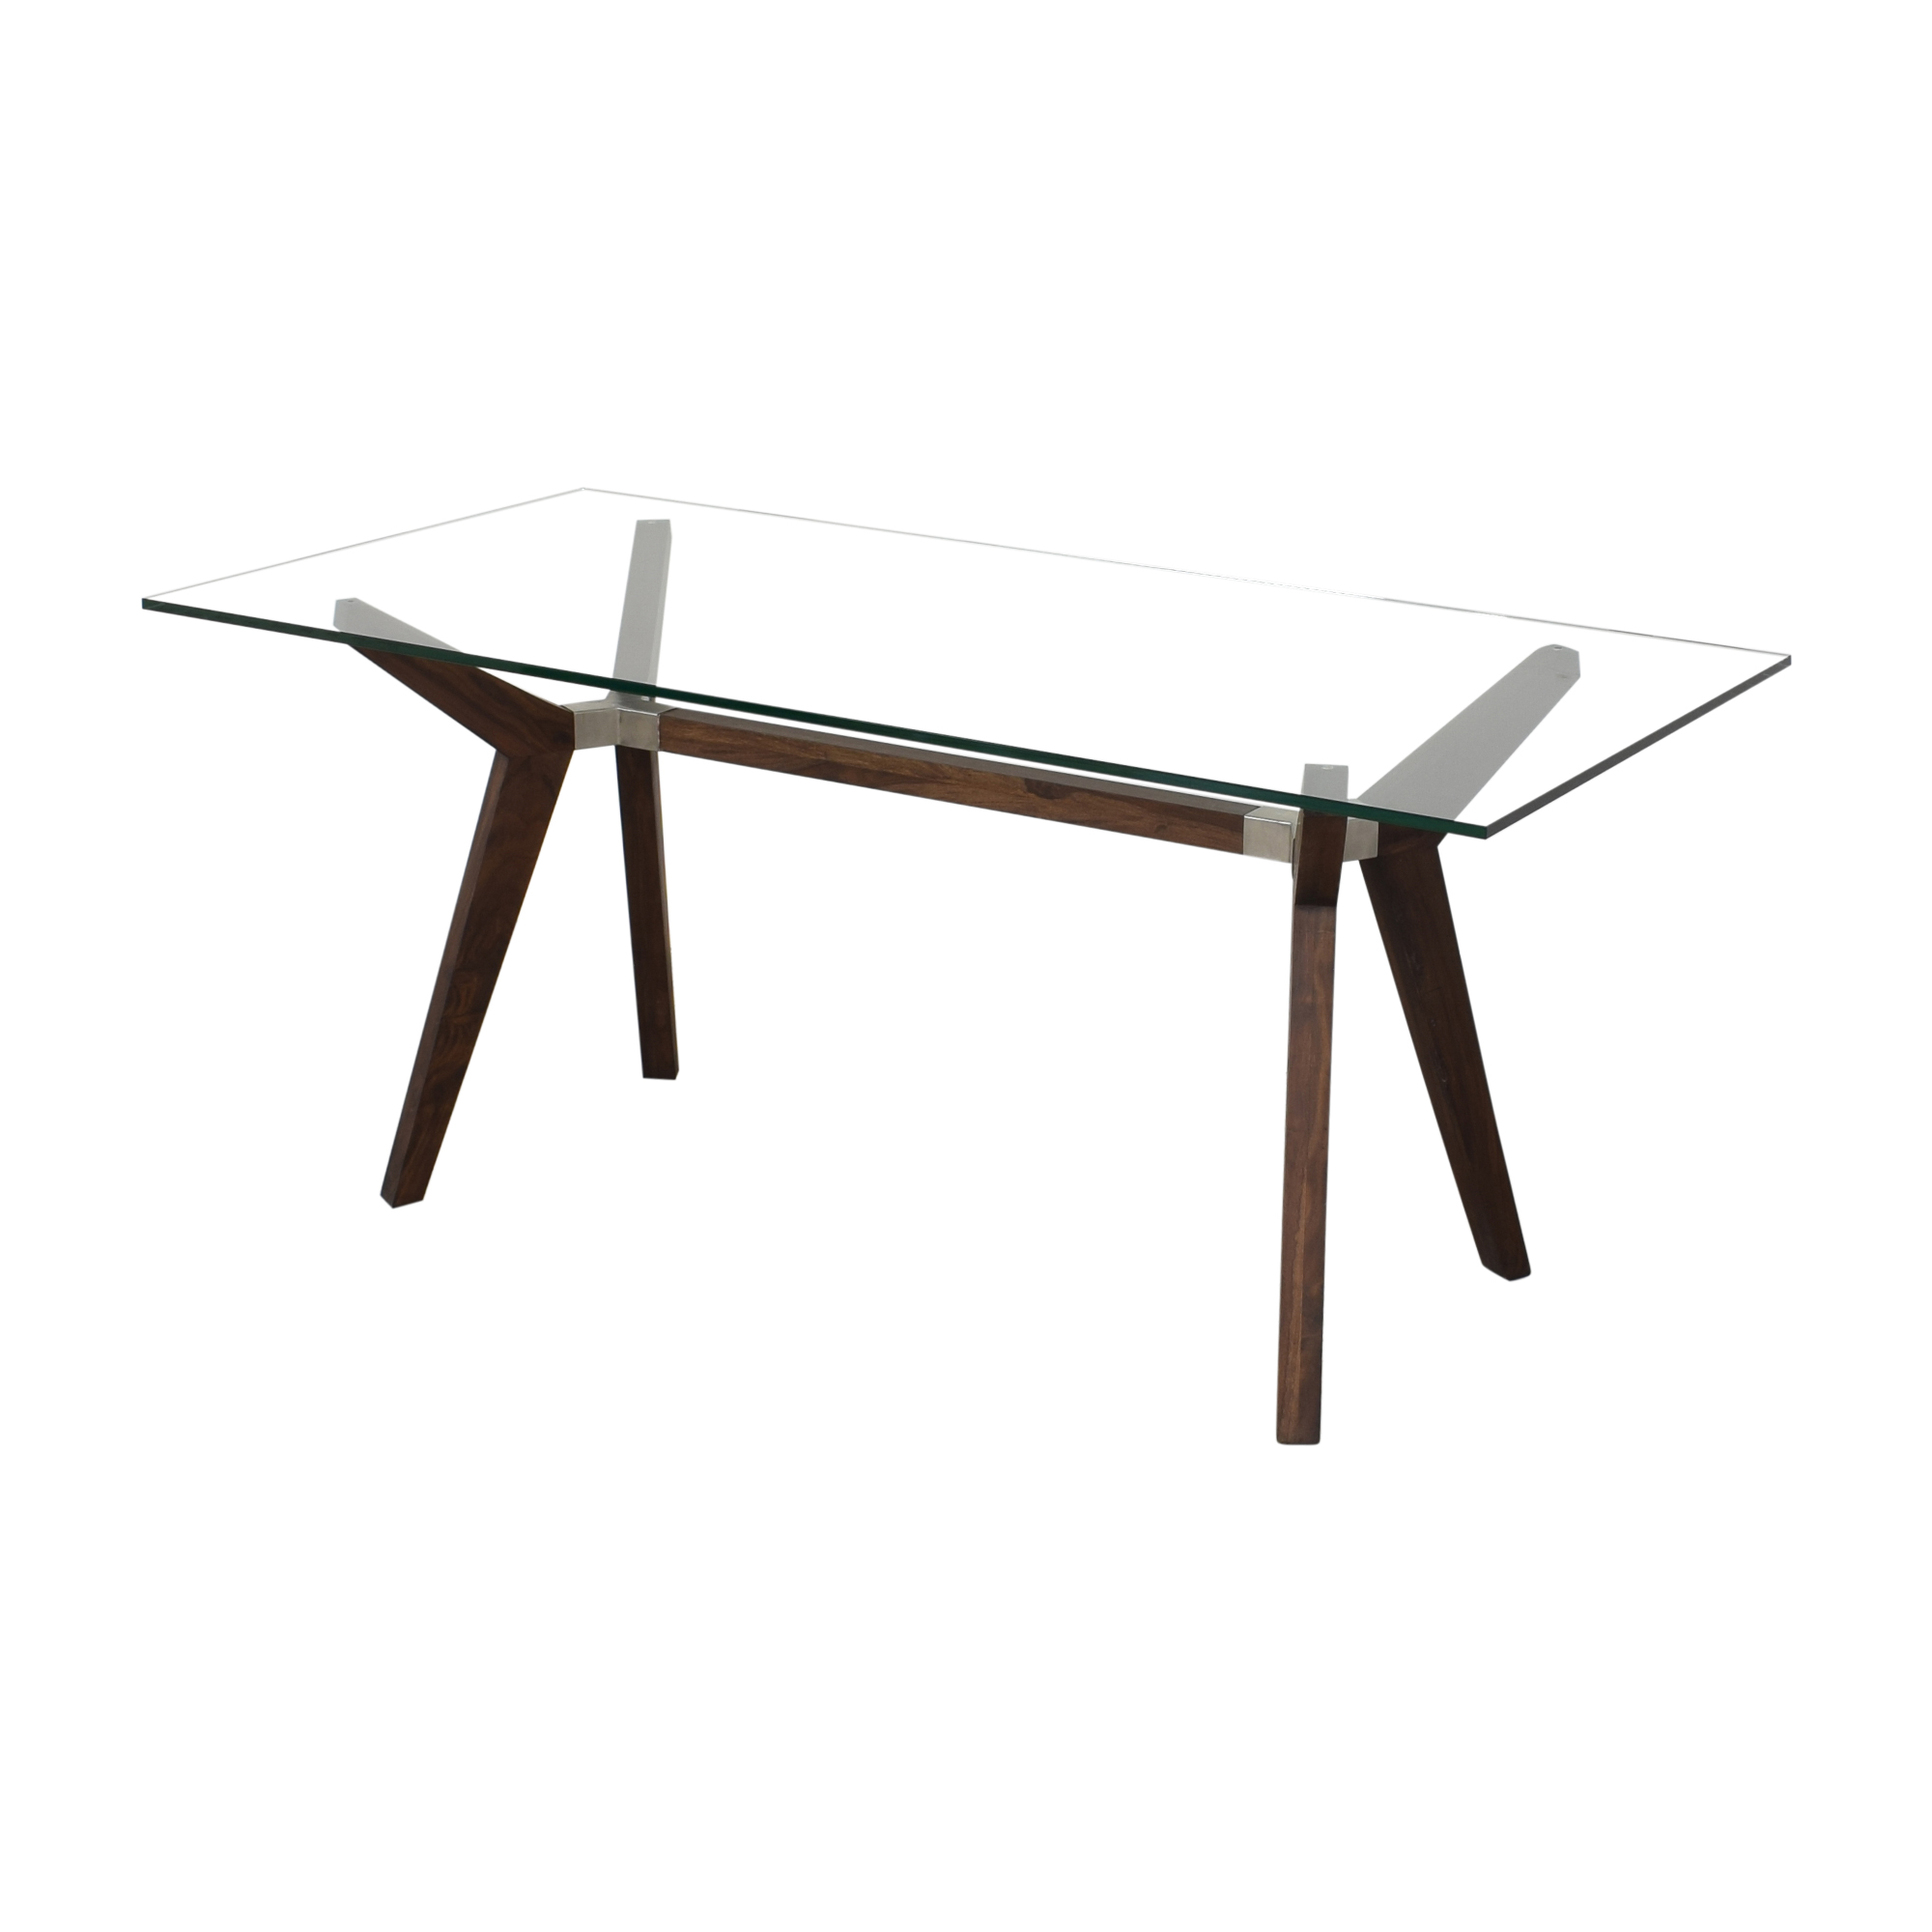 Crate & Barrel Crate & Barrel Strut Bourbon Glass Top Table Dinner Tables